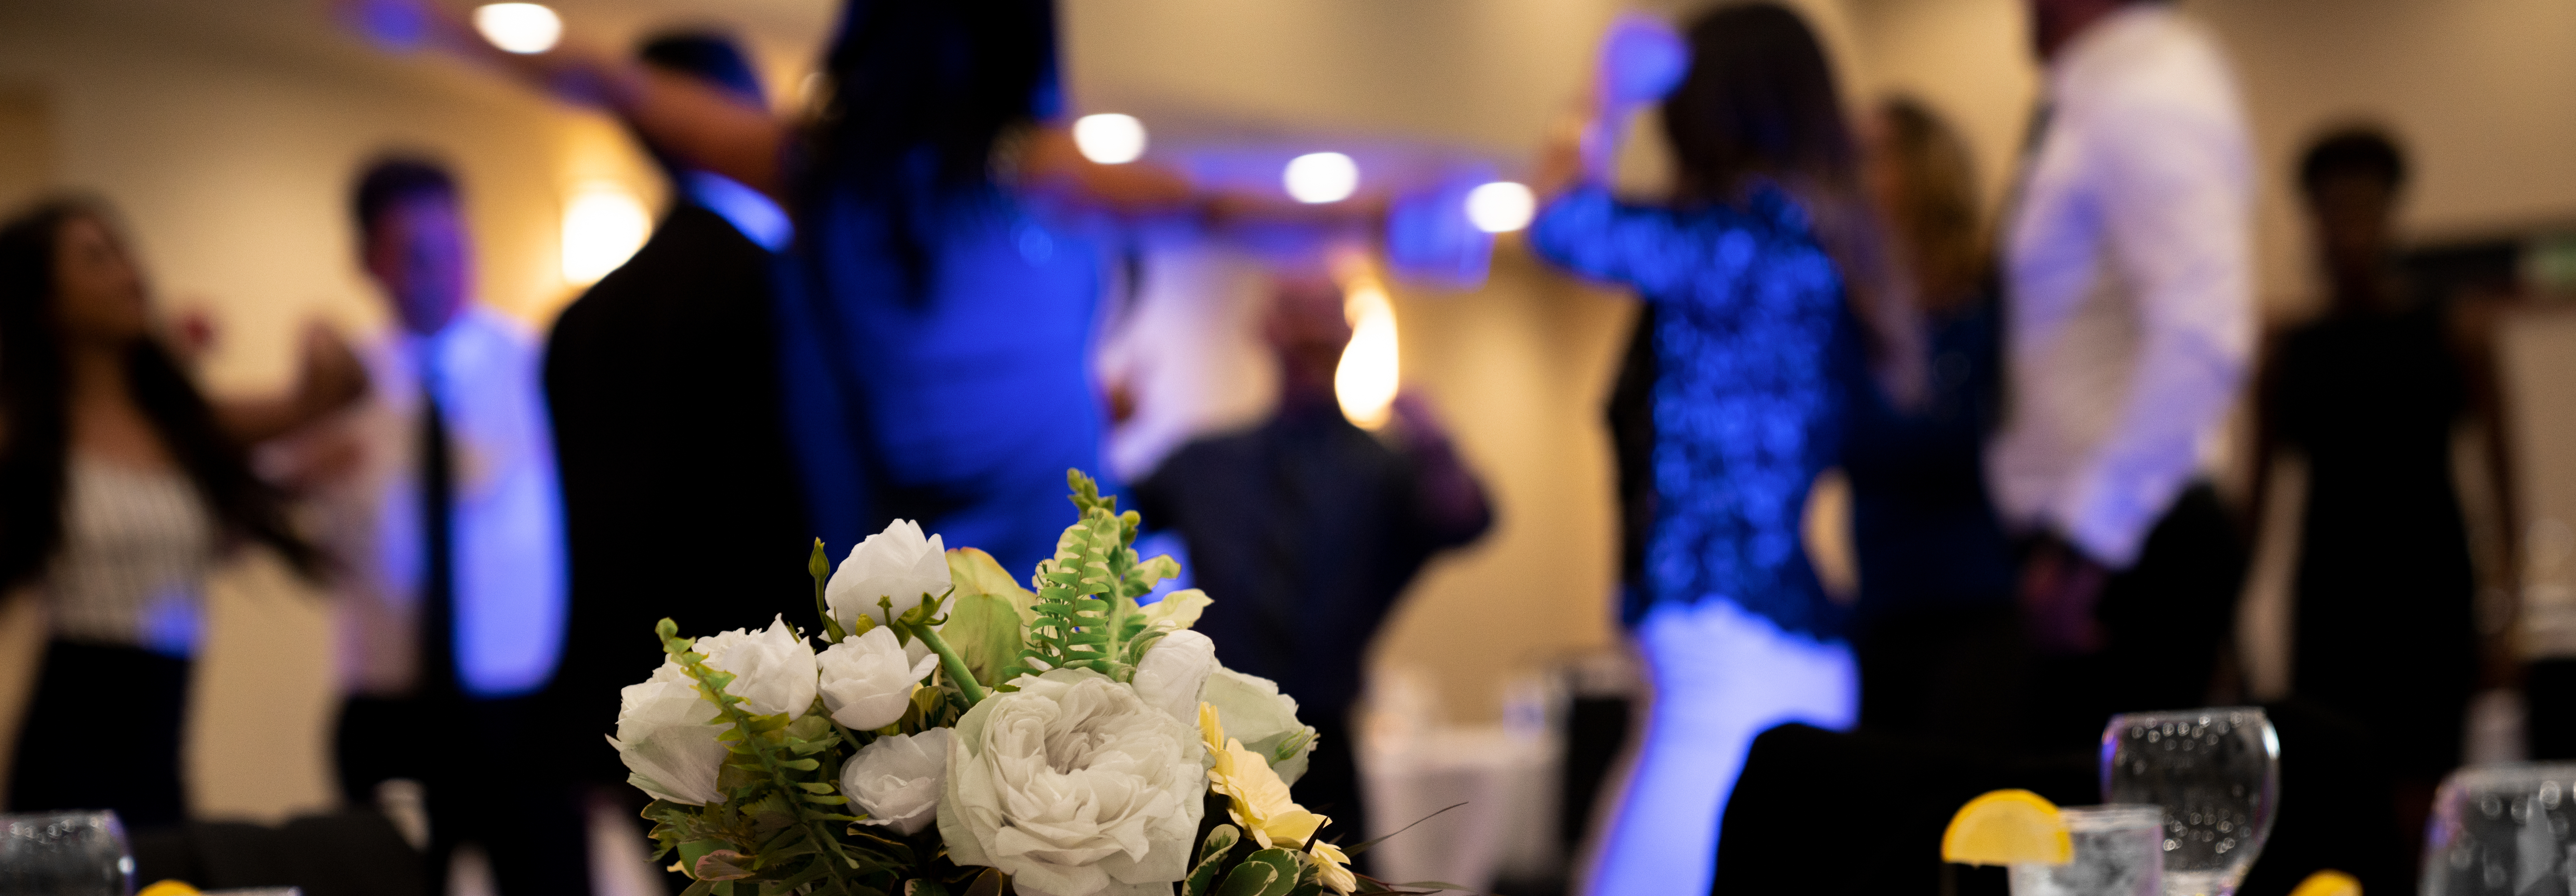 people dancing by flowers on a table